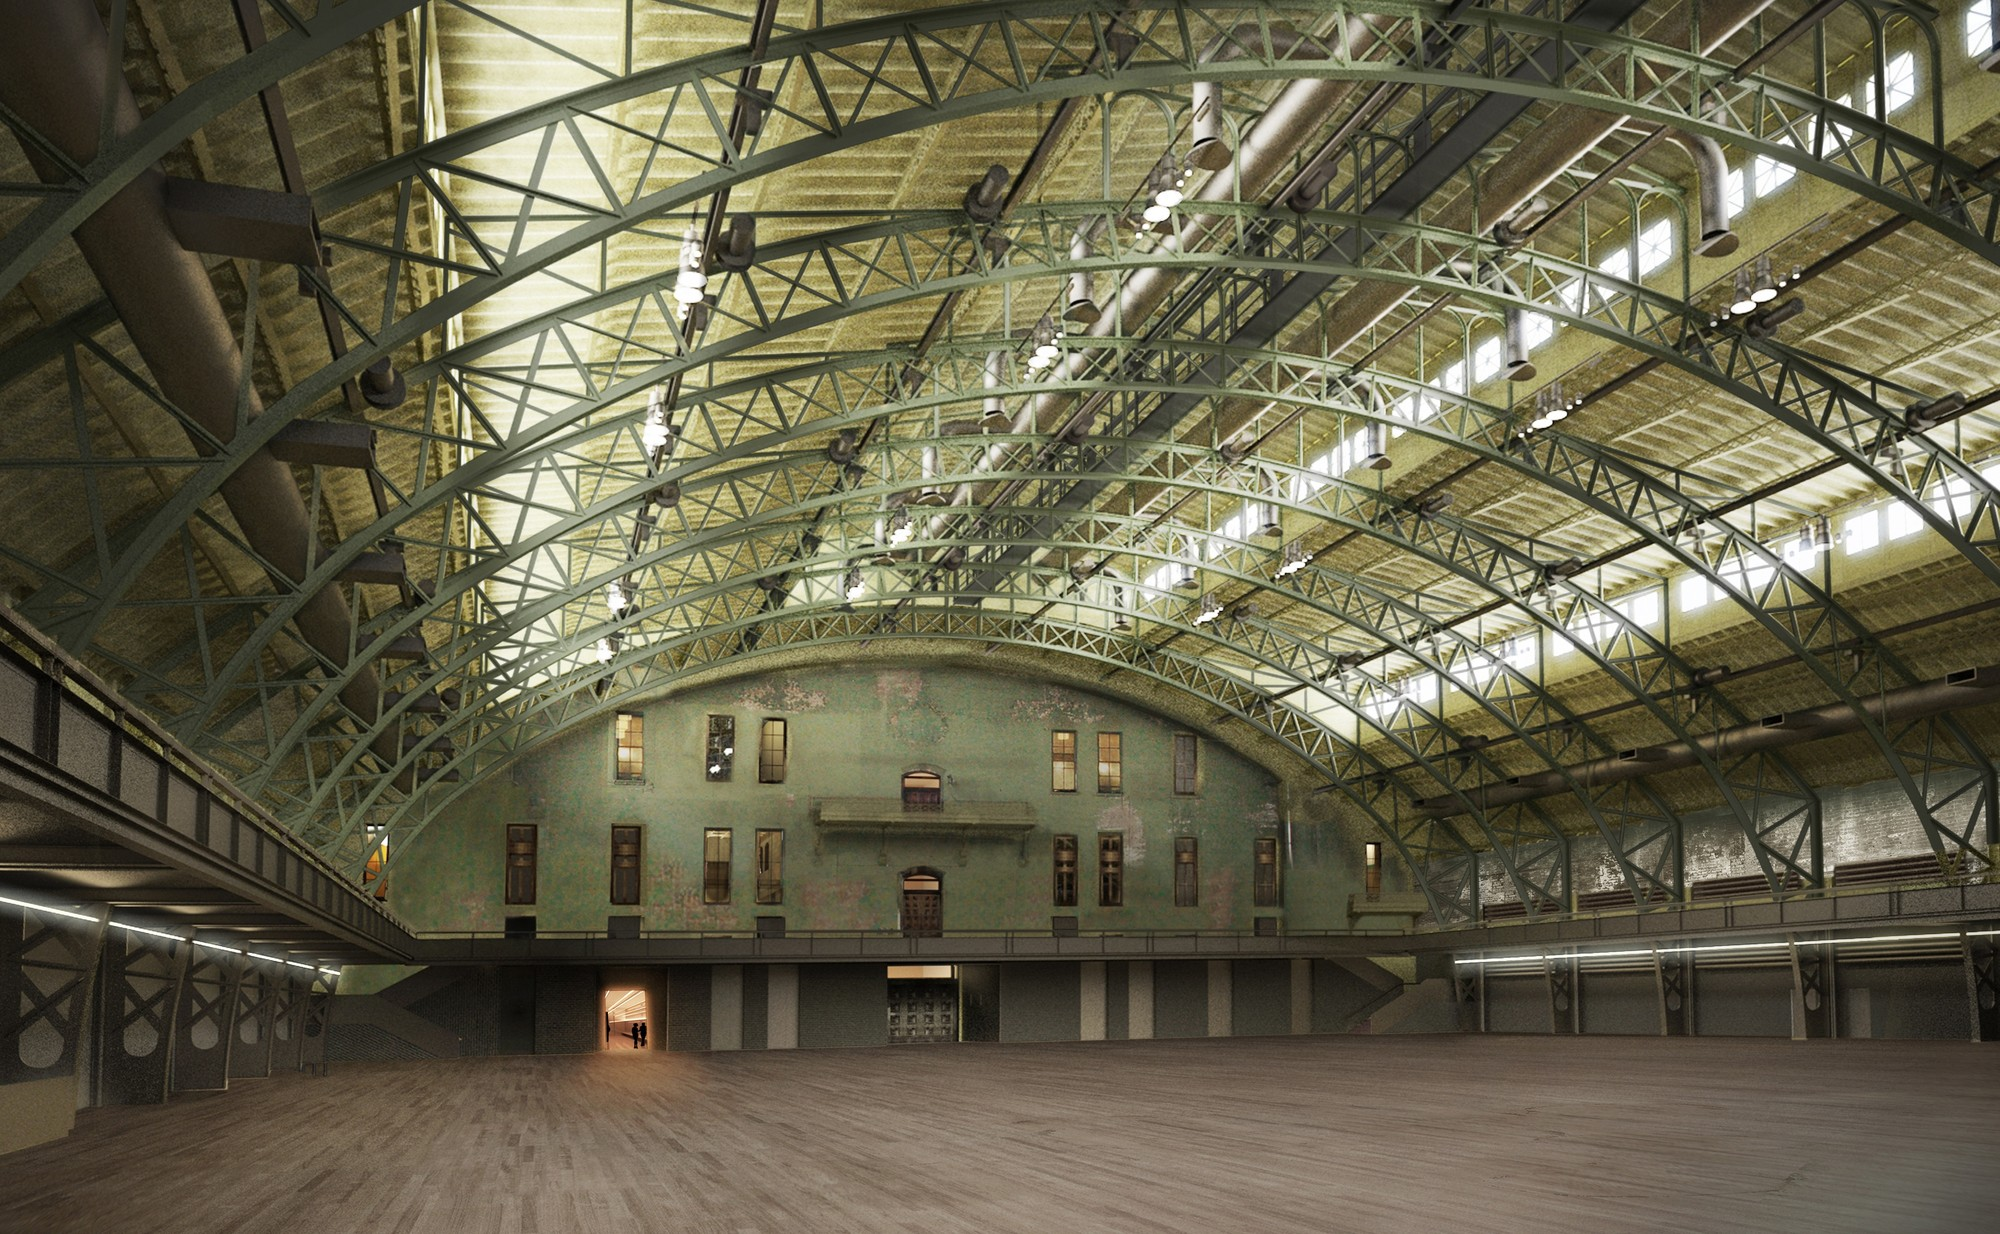 View of the Drill Hall during restoration. Image Courtesy of Herzog & de Meuron